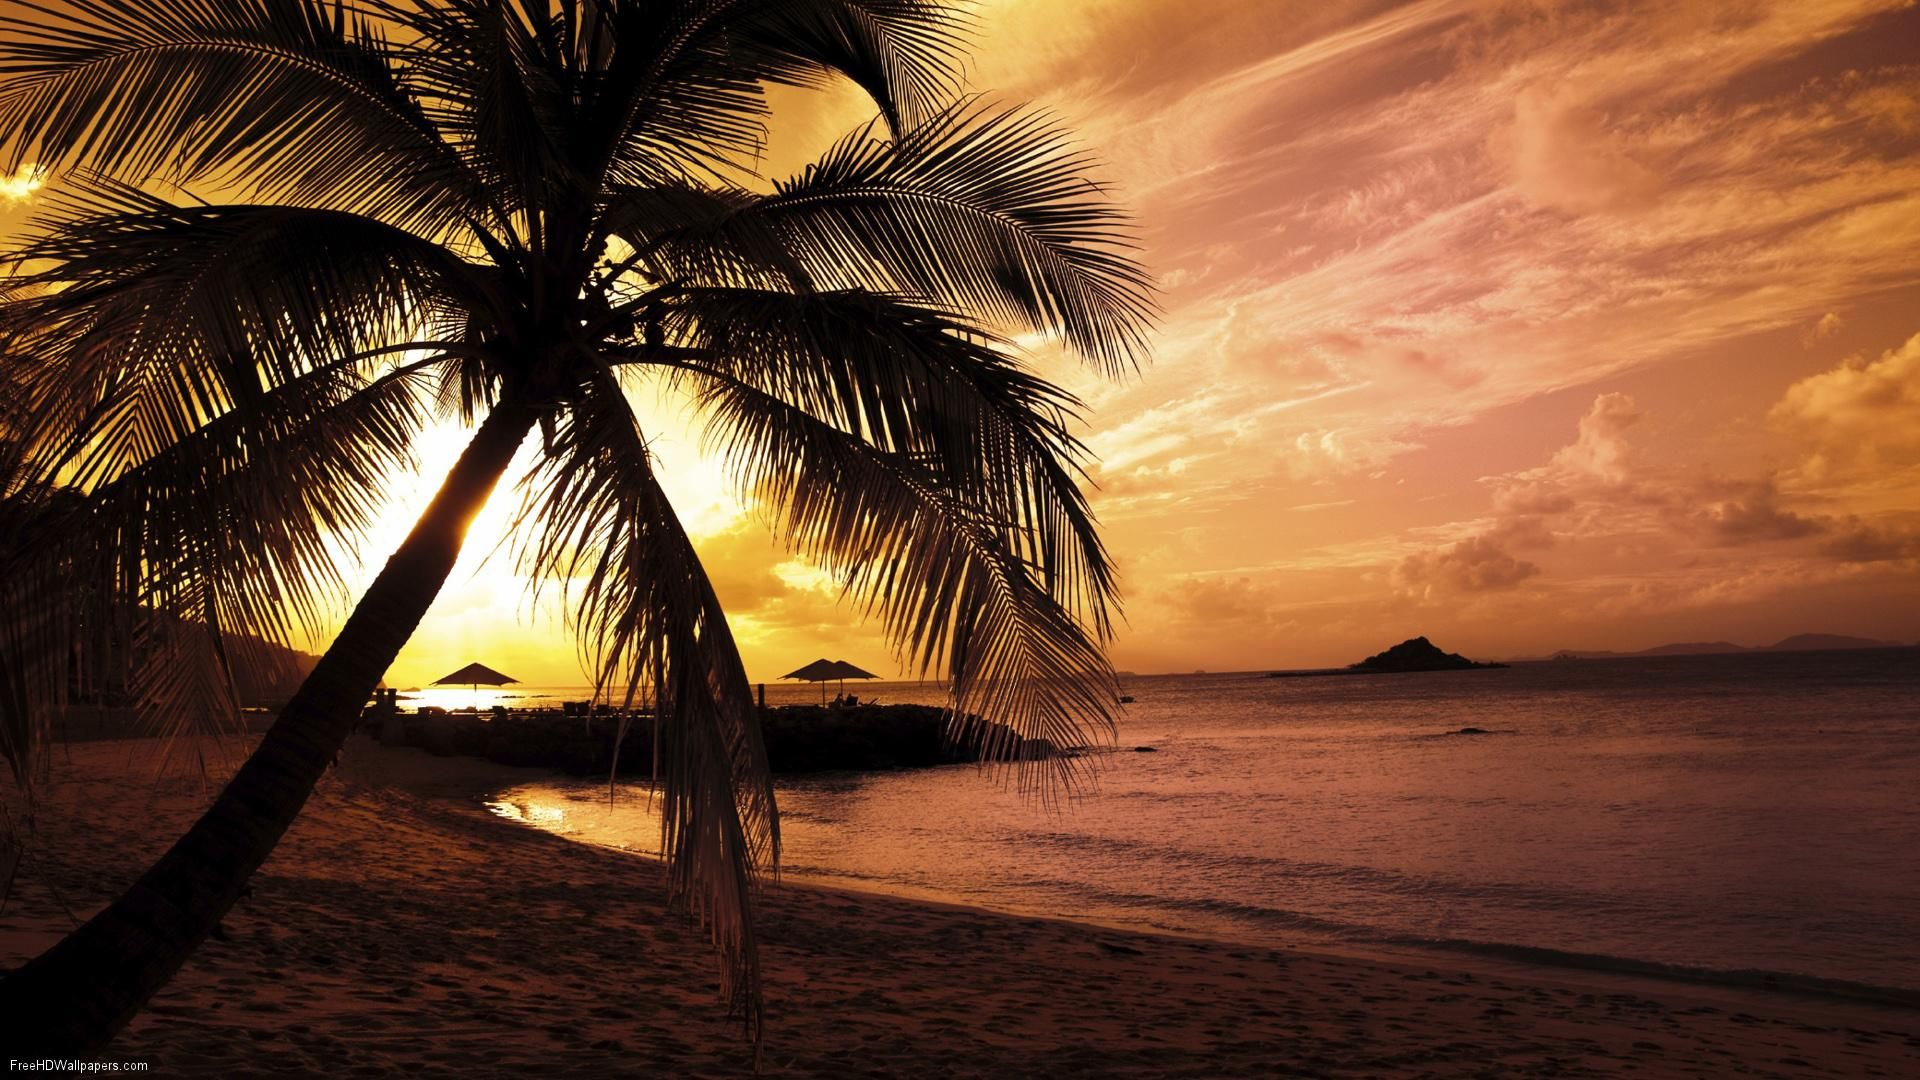 Beach scenes wallpapers beach scenes paradise 1920x1080 beach scenes wallpapers beach scenes paradise 1920x1080 343975 beach voltagebd Images